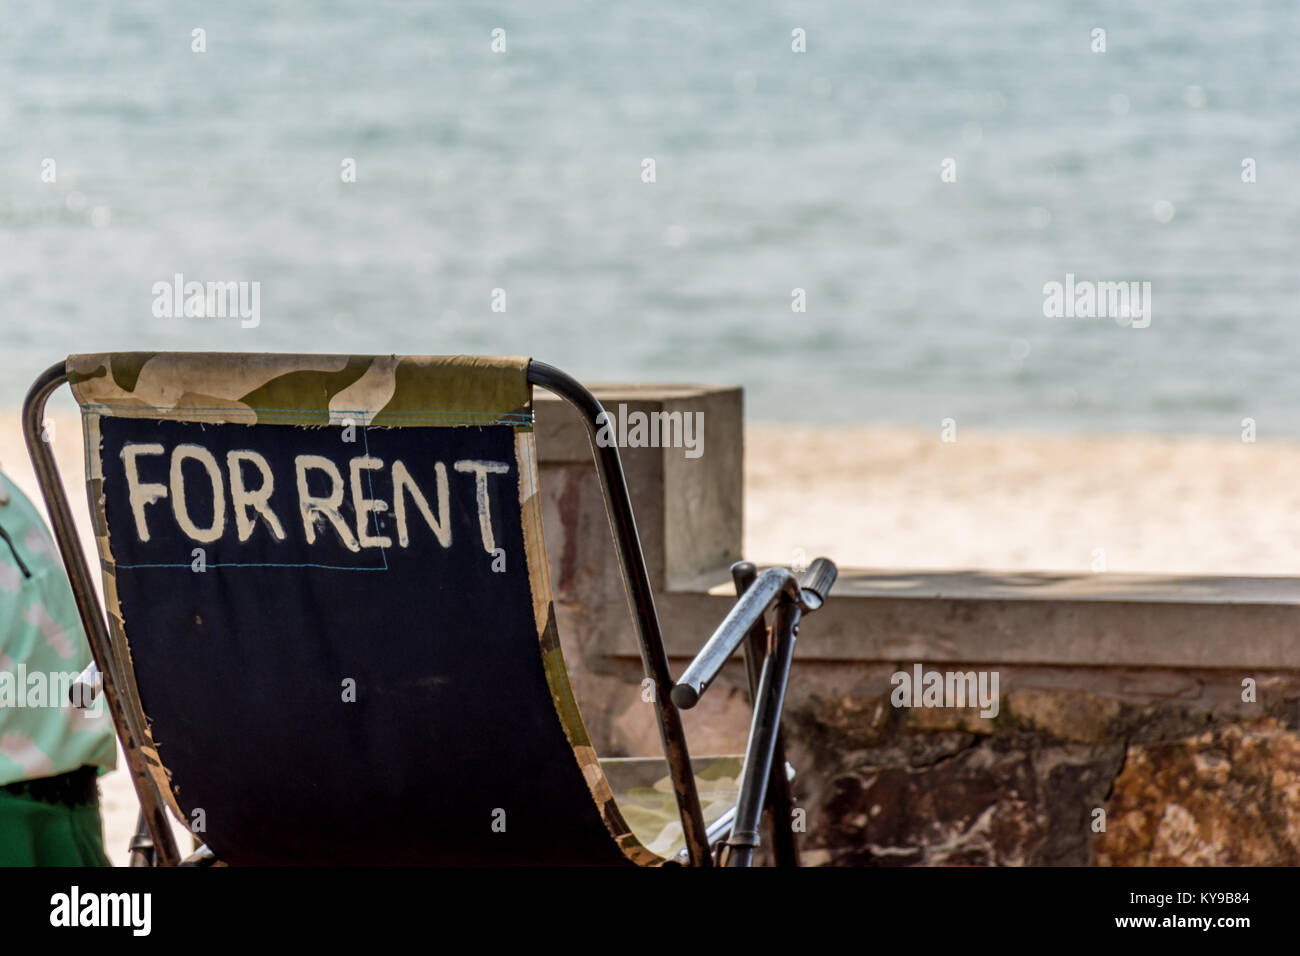 Beach side deck chair labeled For Rent facing out on to the beach. - Stock Image